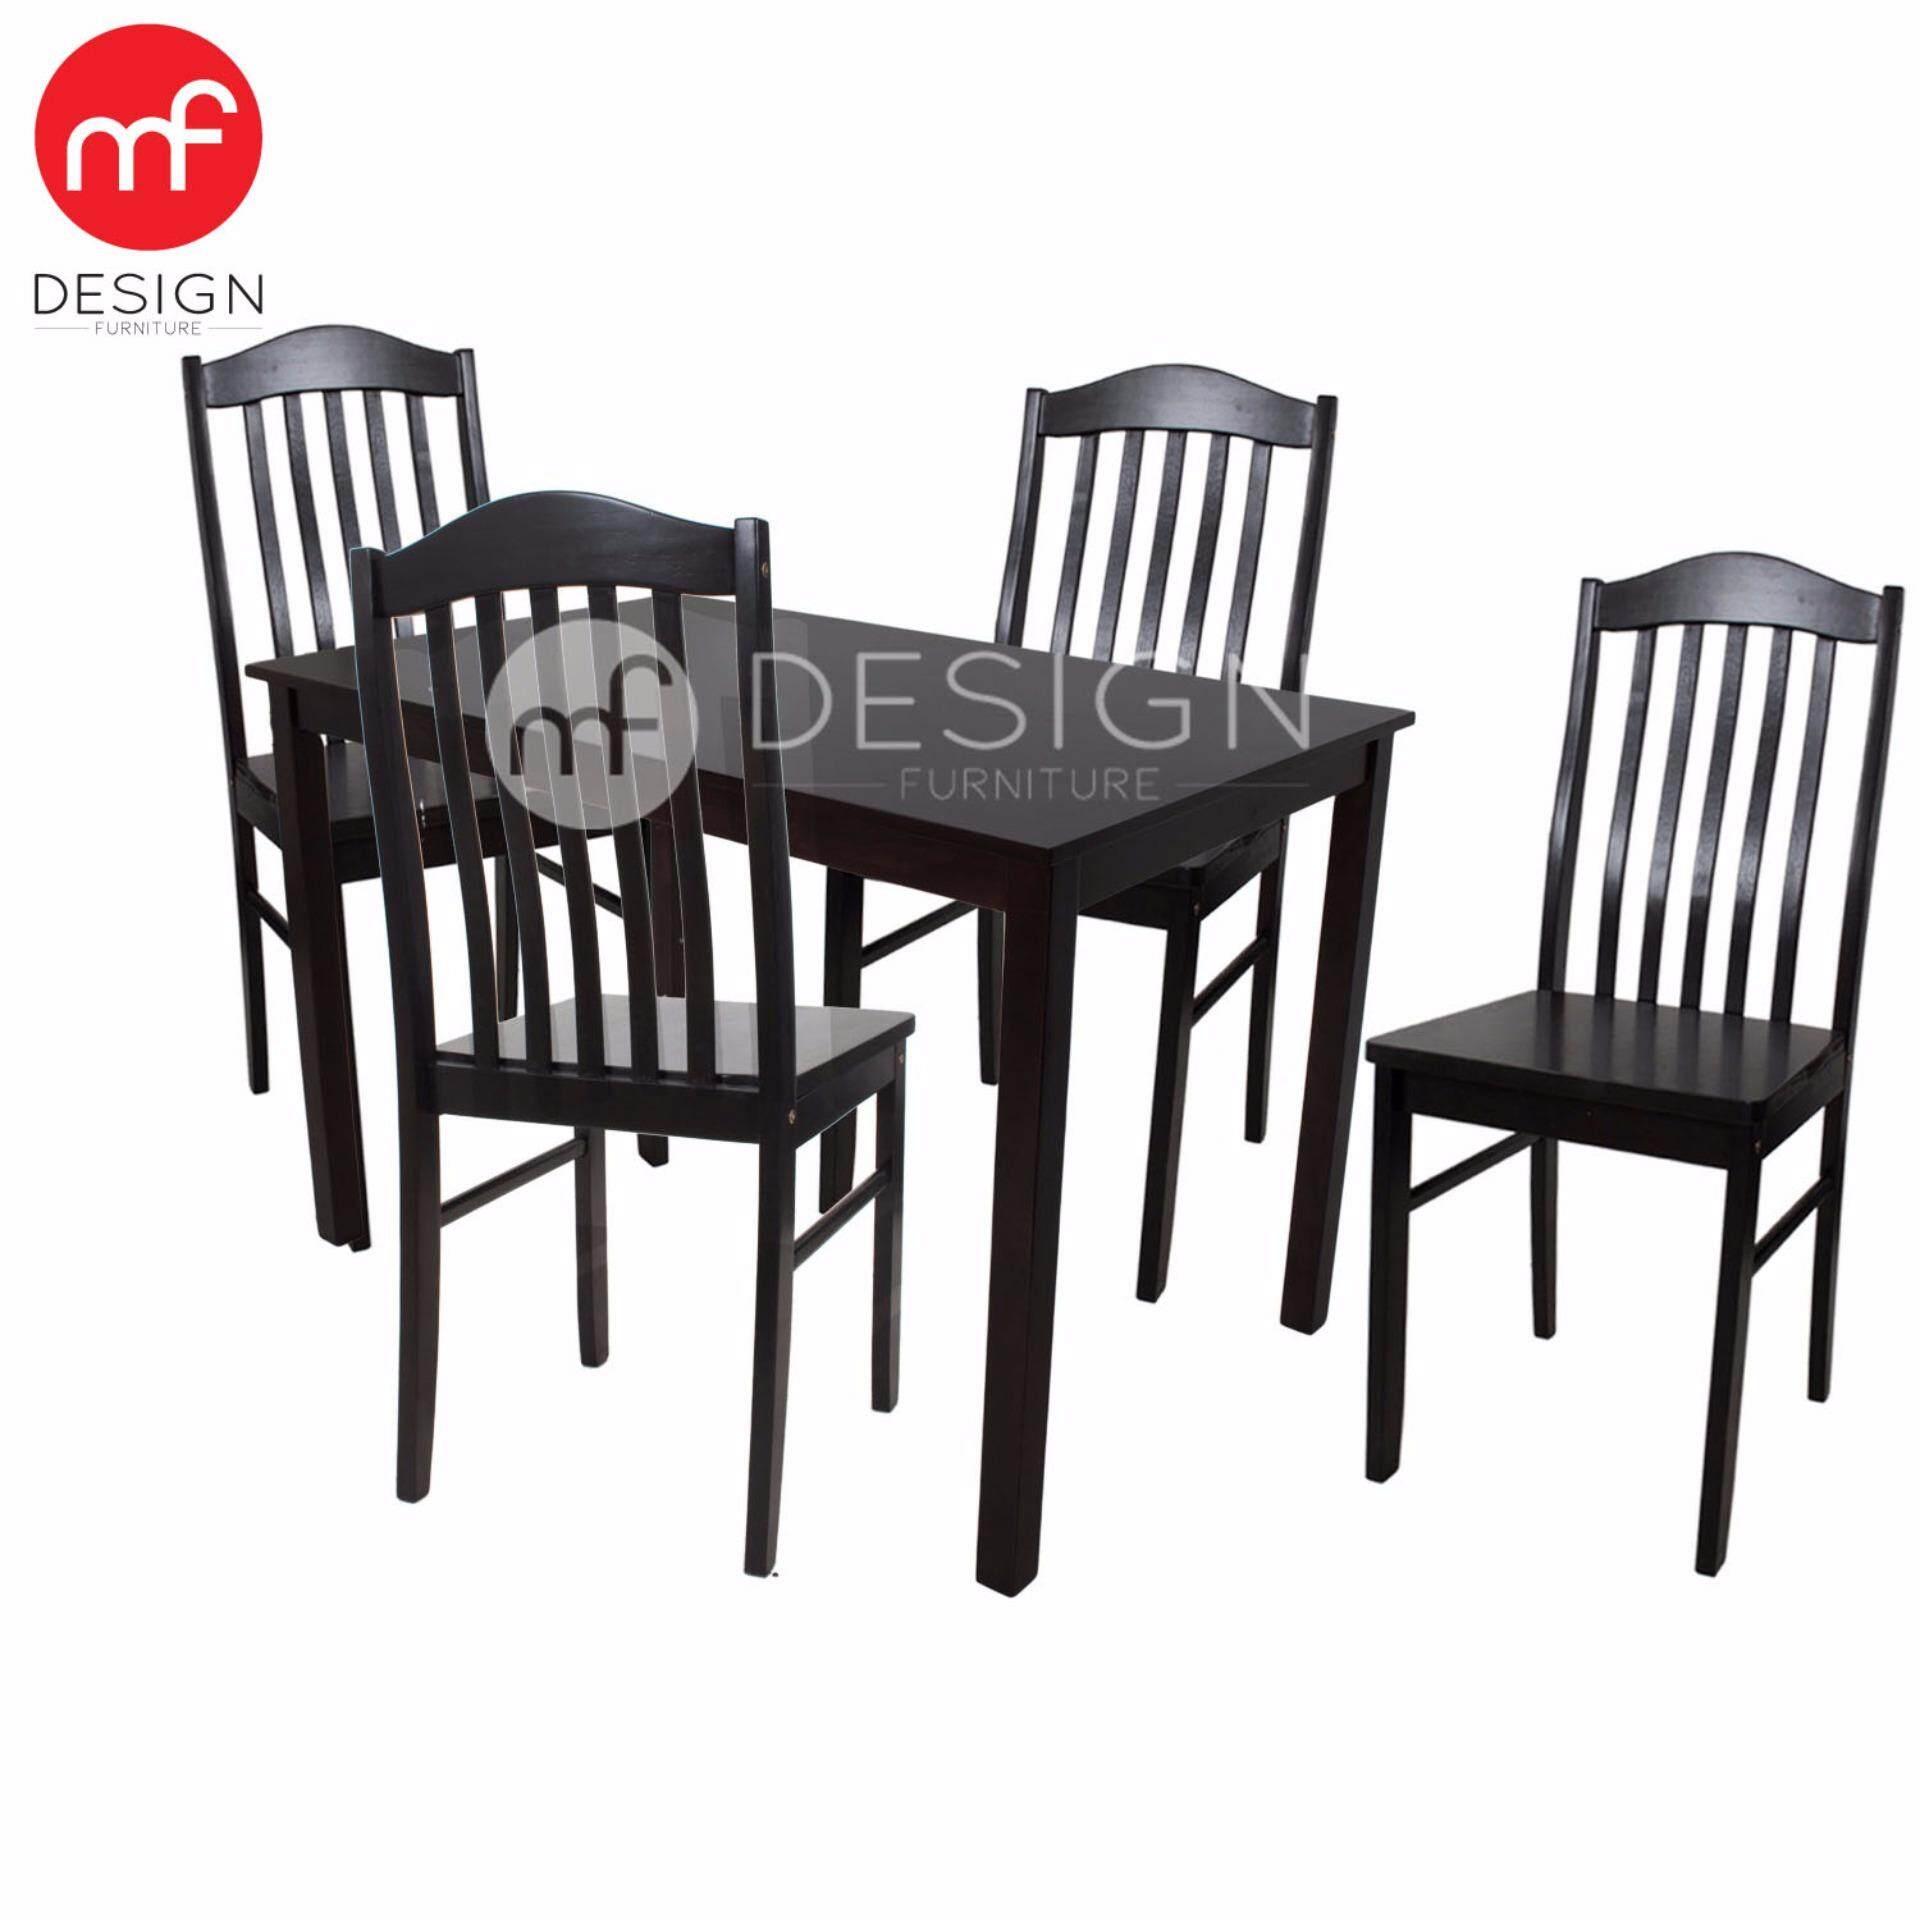 MF DESIGN EXARA DINING TABLE WITH 4 CHAIR DINING CHAIR DINING SET